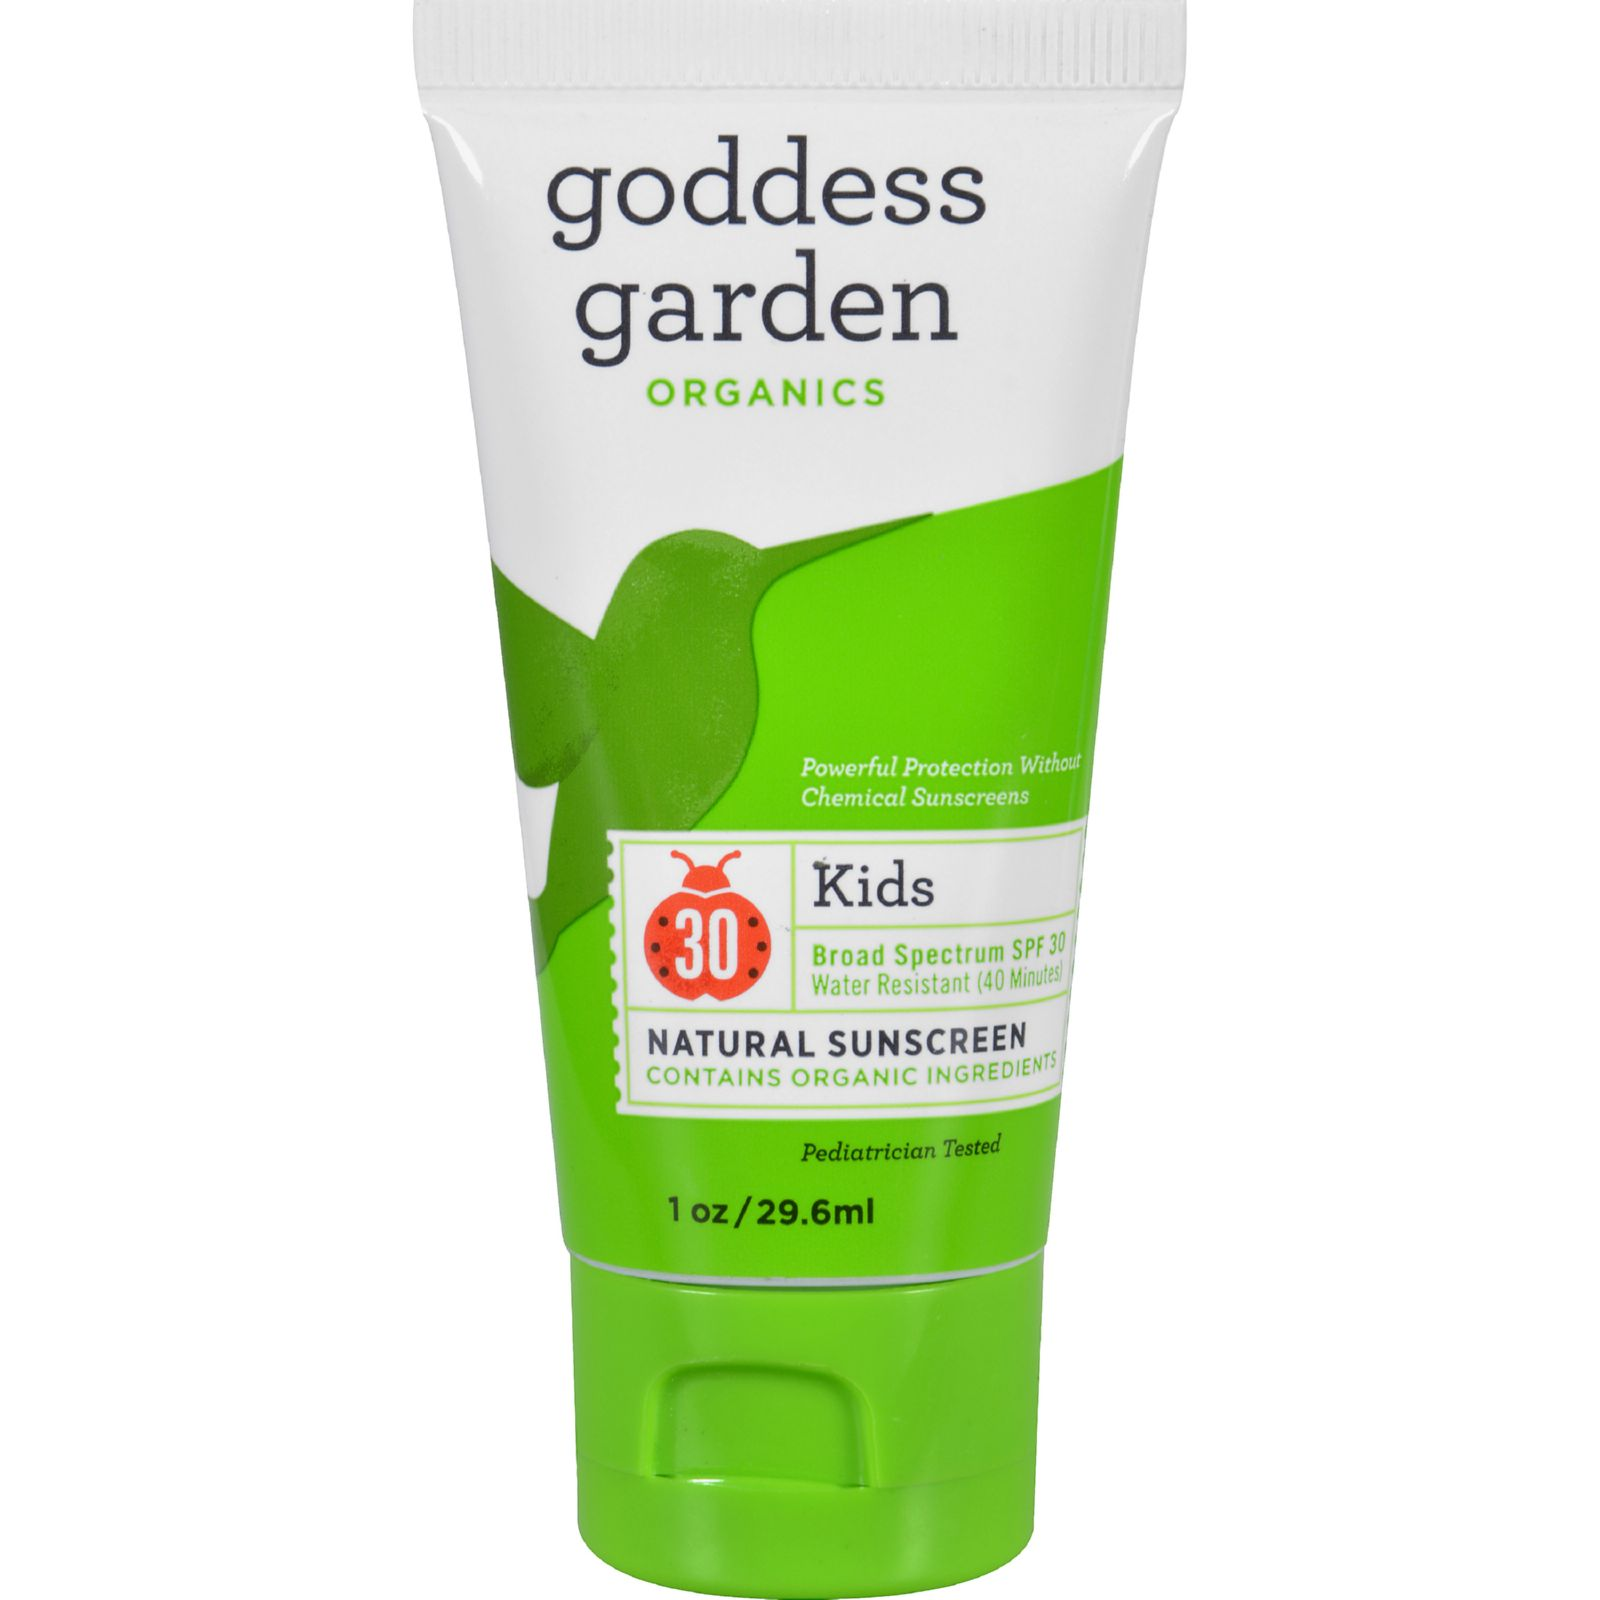 Goddess Garden Organic Sunscreen Counter Display - Kids - 1 Oz - Case Of 20